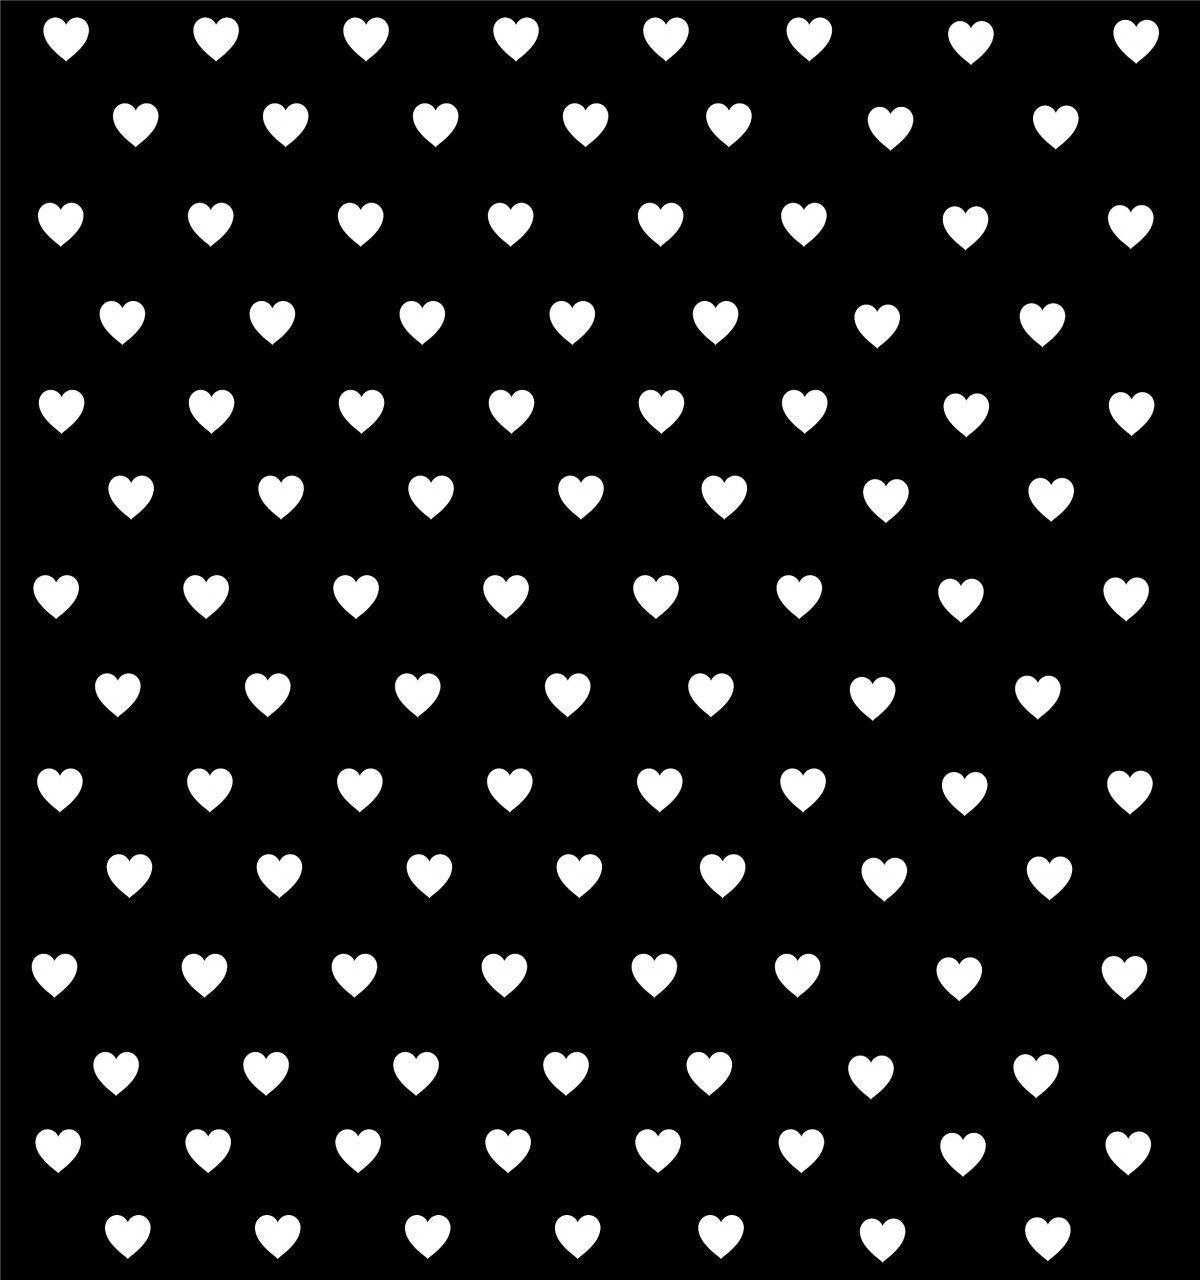 10 Most Popular Heart Background Black And White FULL HD 1080p For PC Background